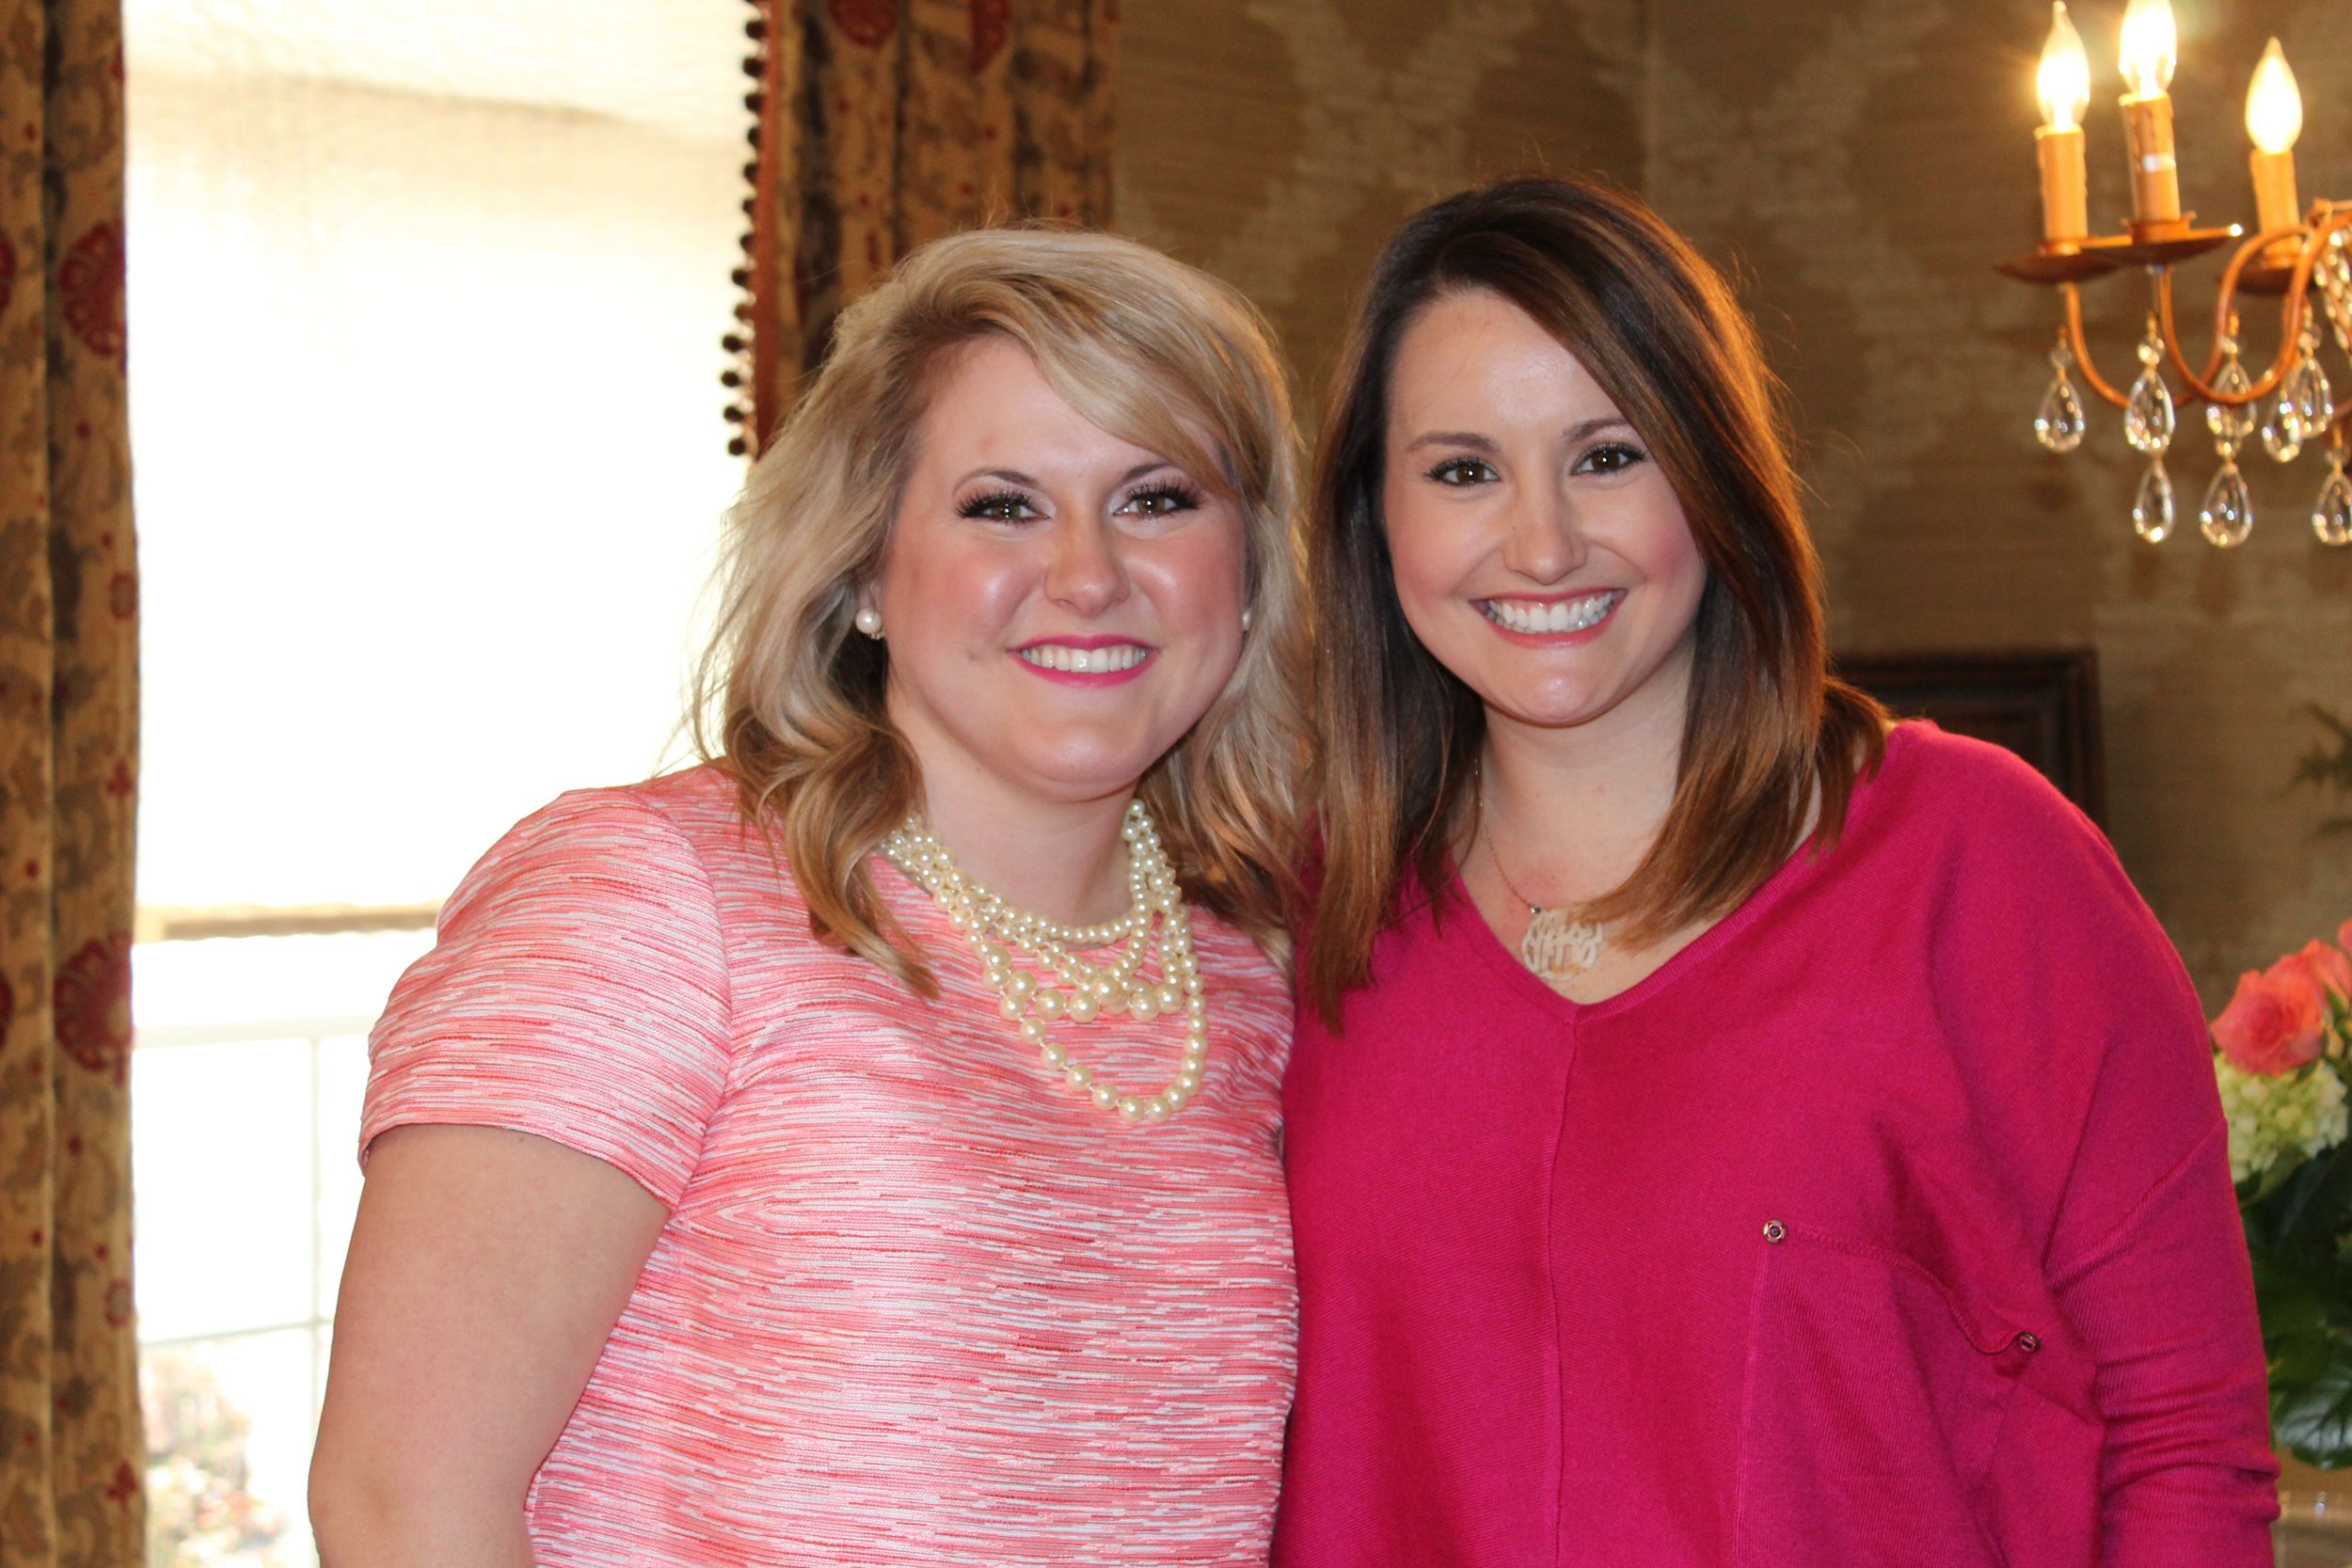 My bestie and Matron of Honor, Hope, made the trip up from MS! So good to see her!